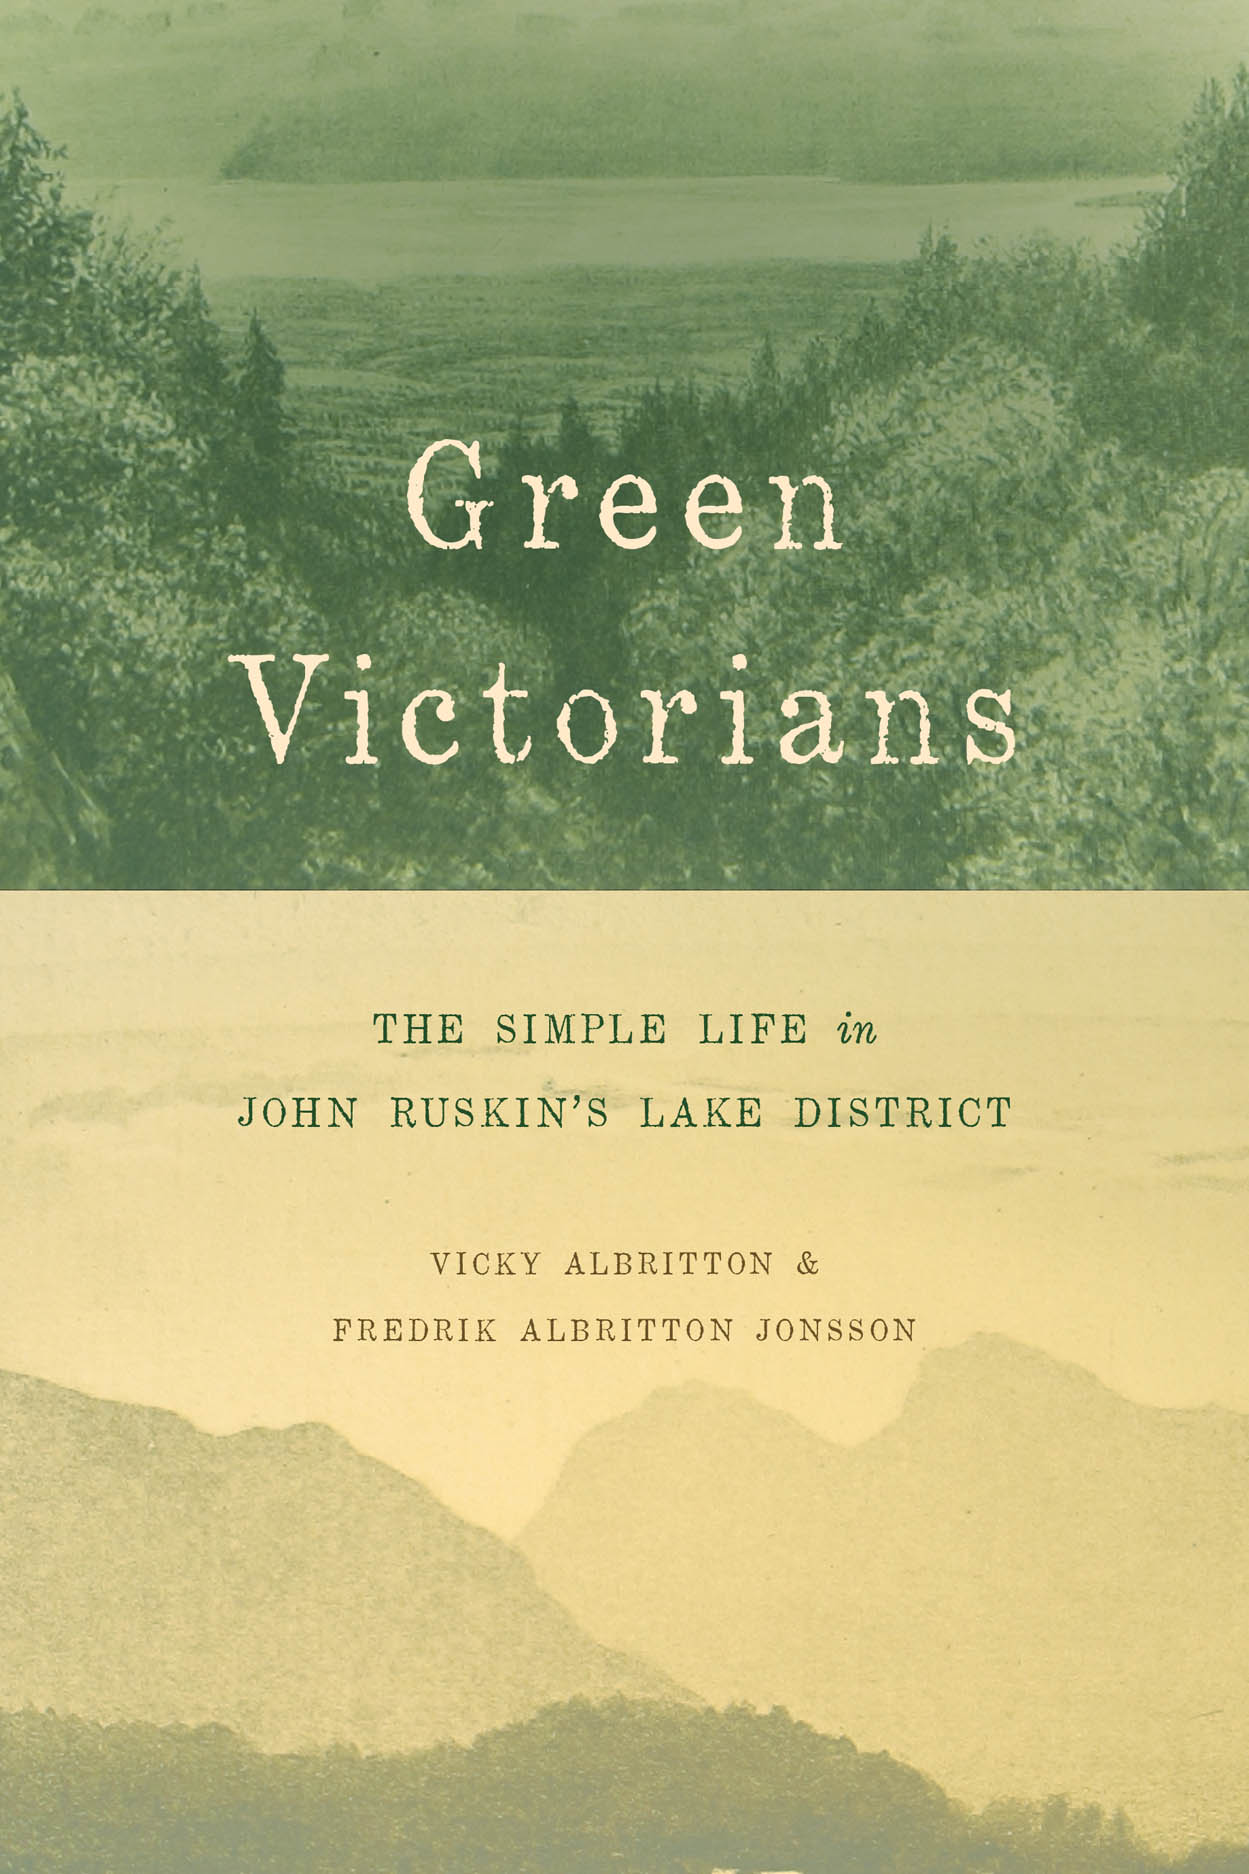 Green Victorians: The Simple Life in John Ruskin's Lake District